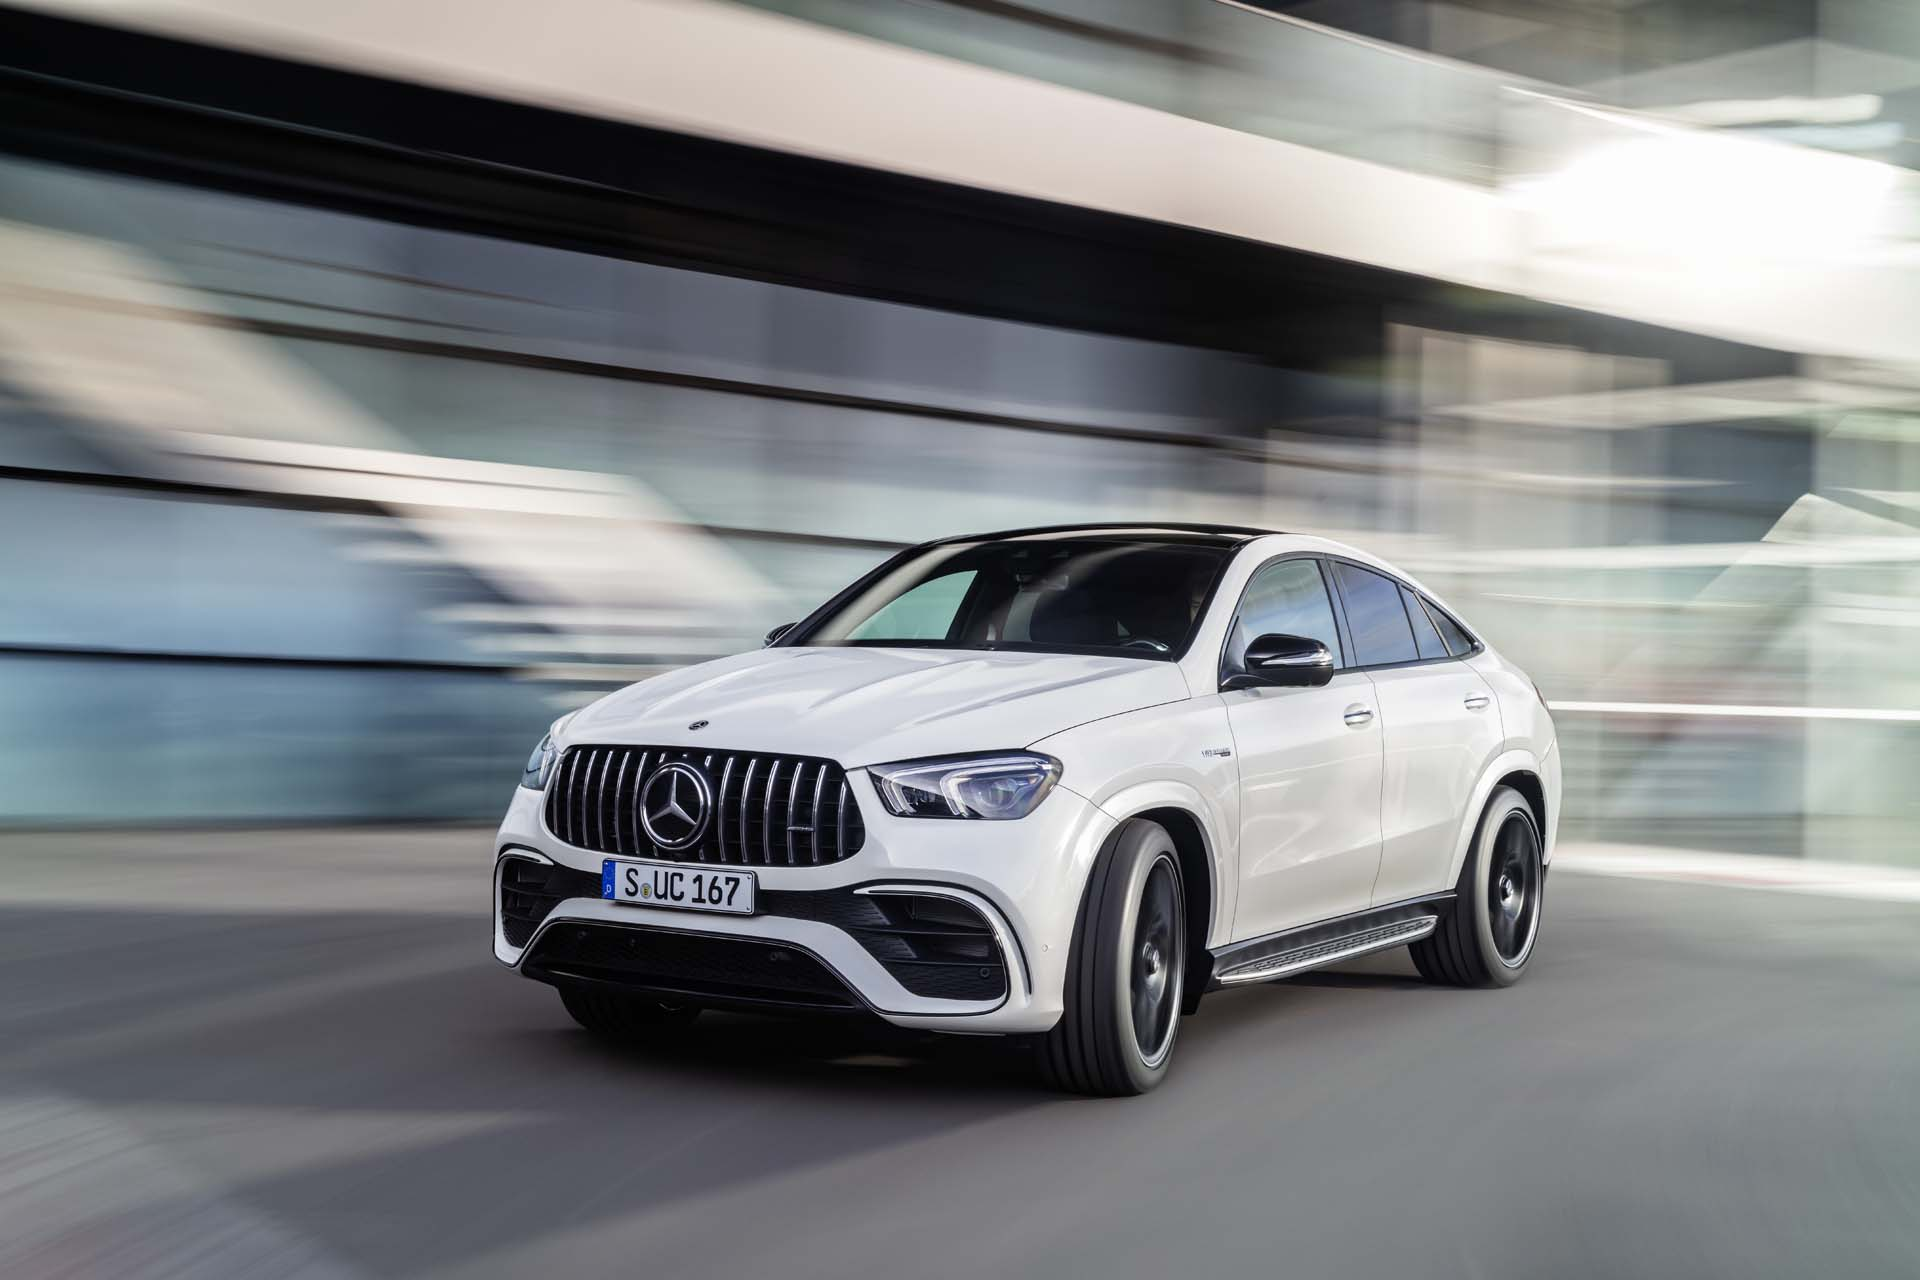 2021 Mercedes-AMG GLE63 S Coupe arrives with 603 horsepower and more bragging rights